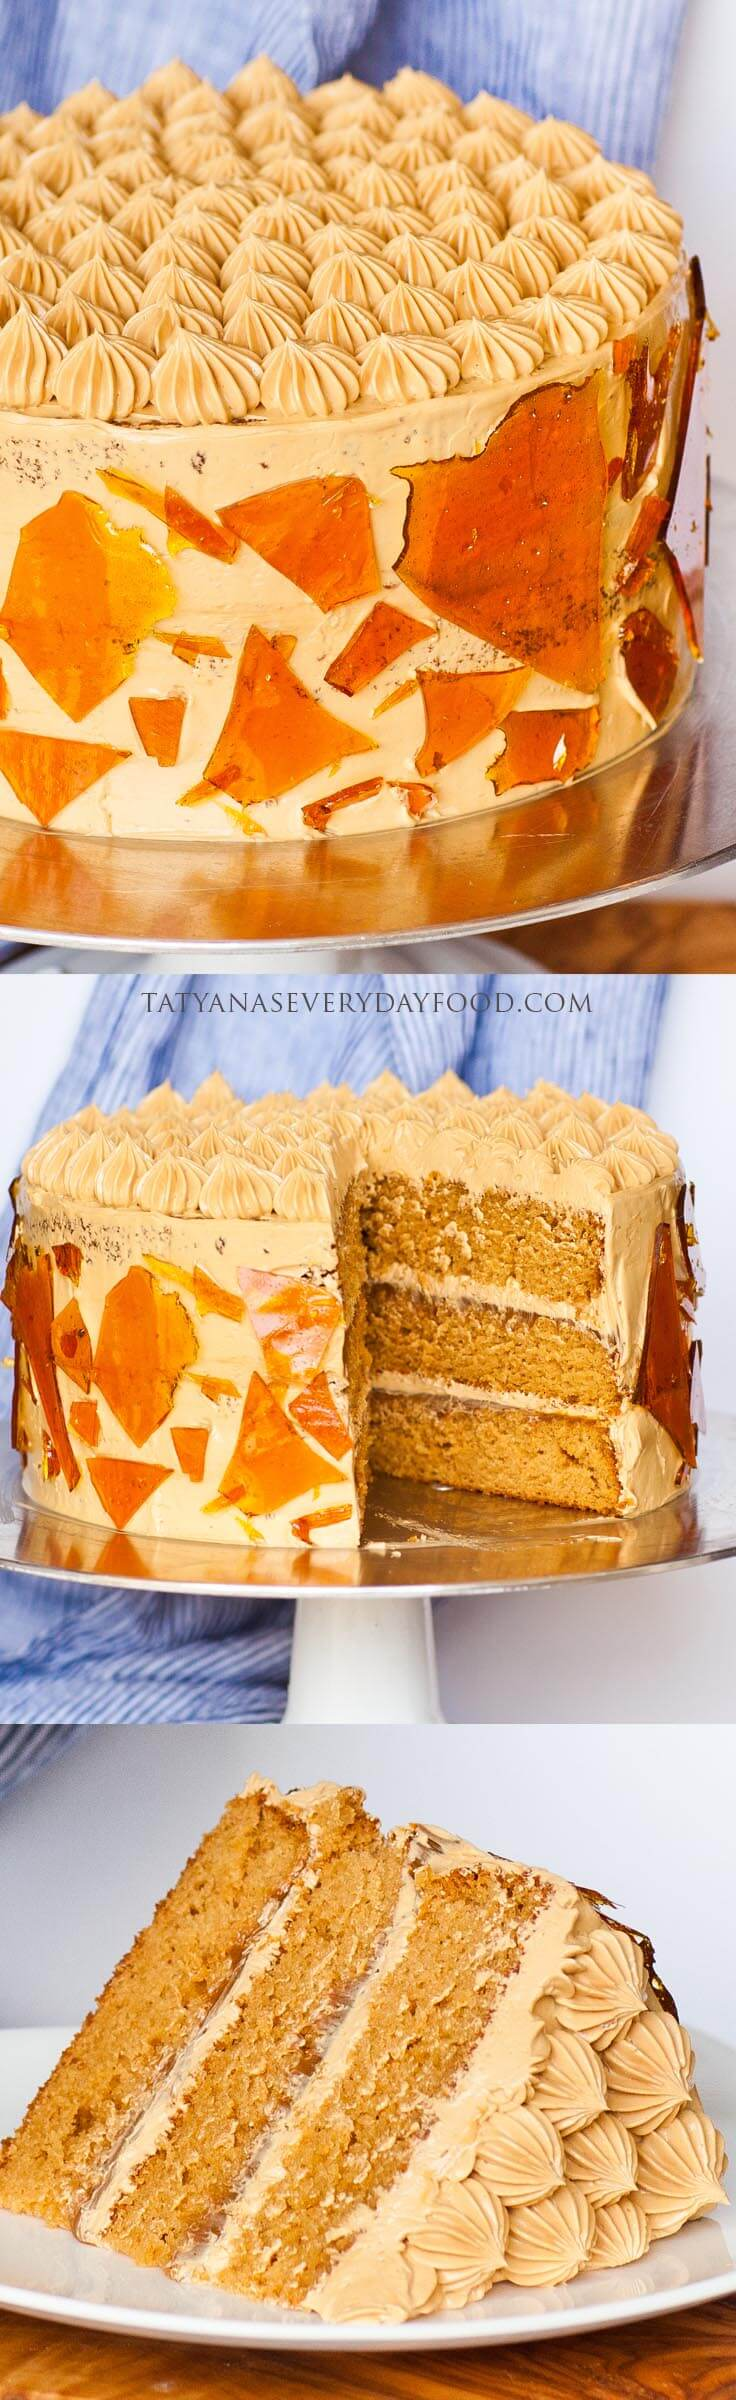 The Best Dulce de Leche Cake video recipe